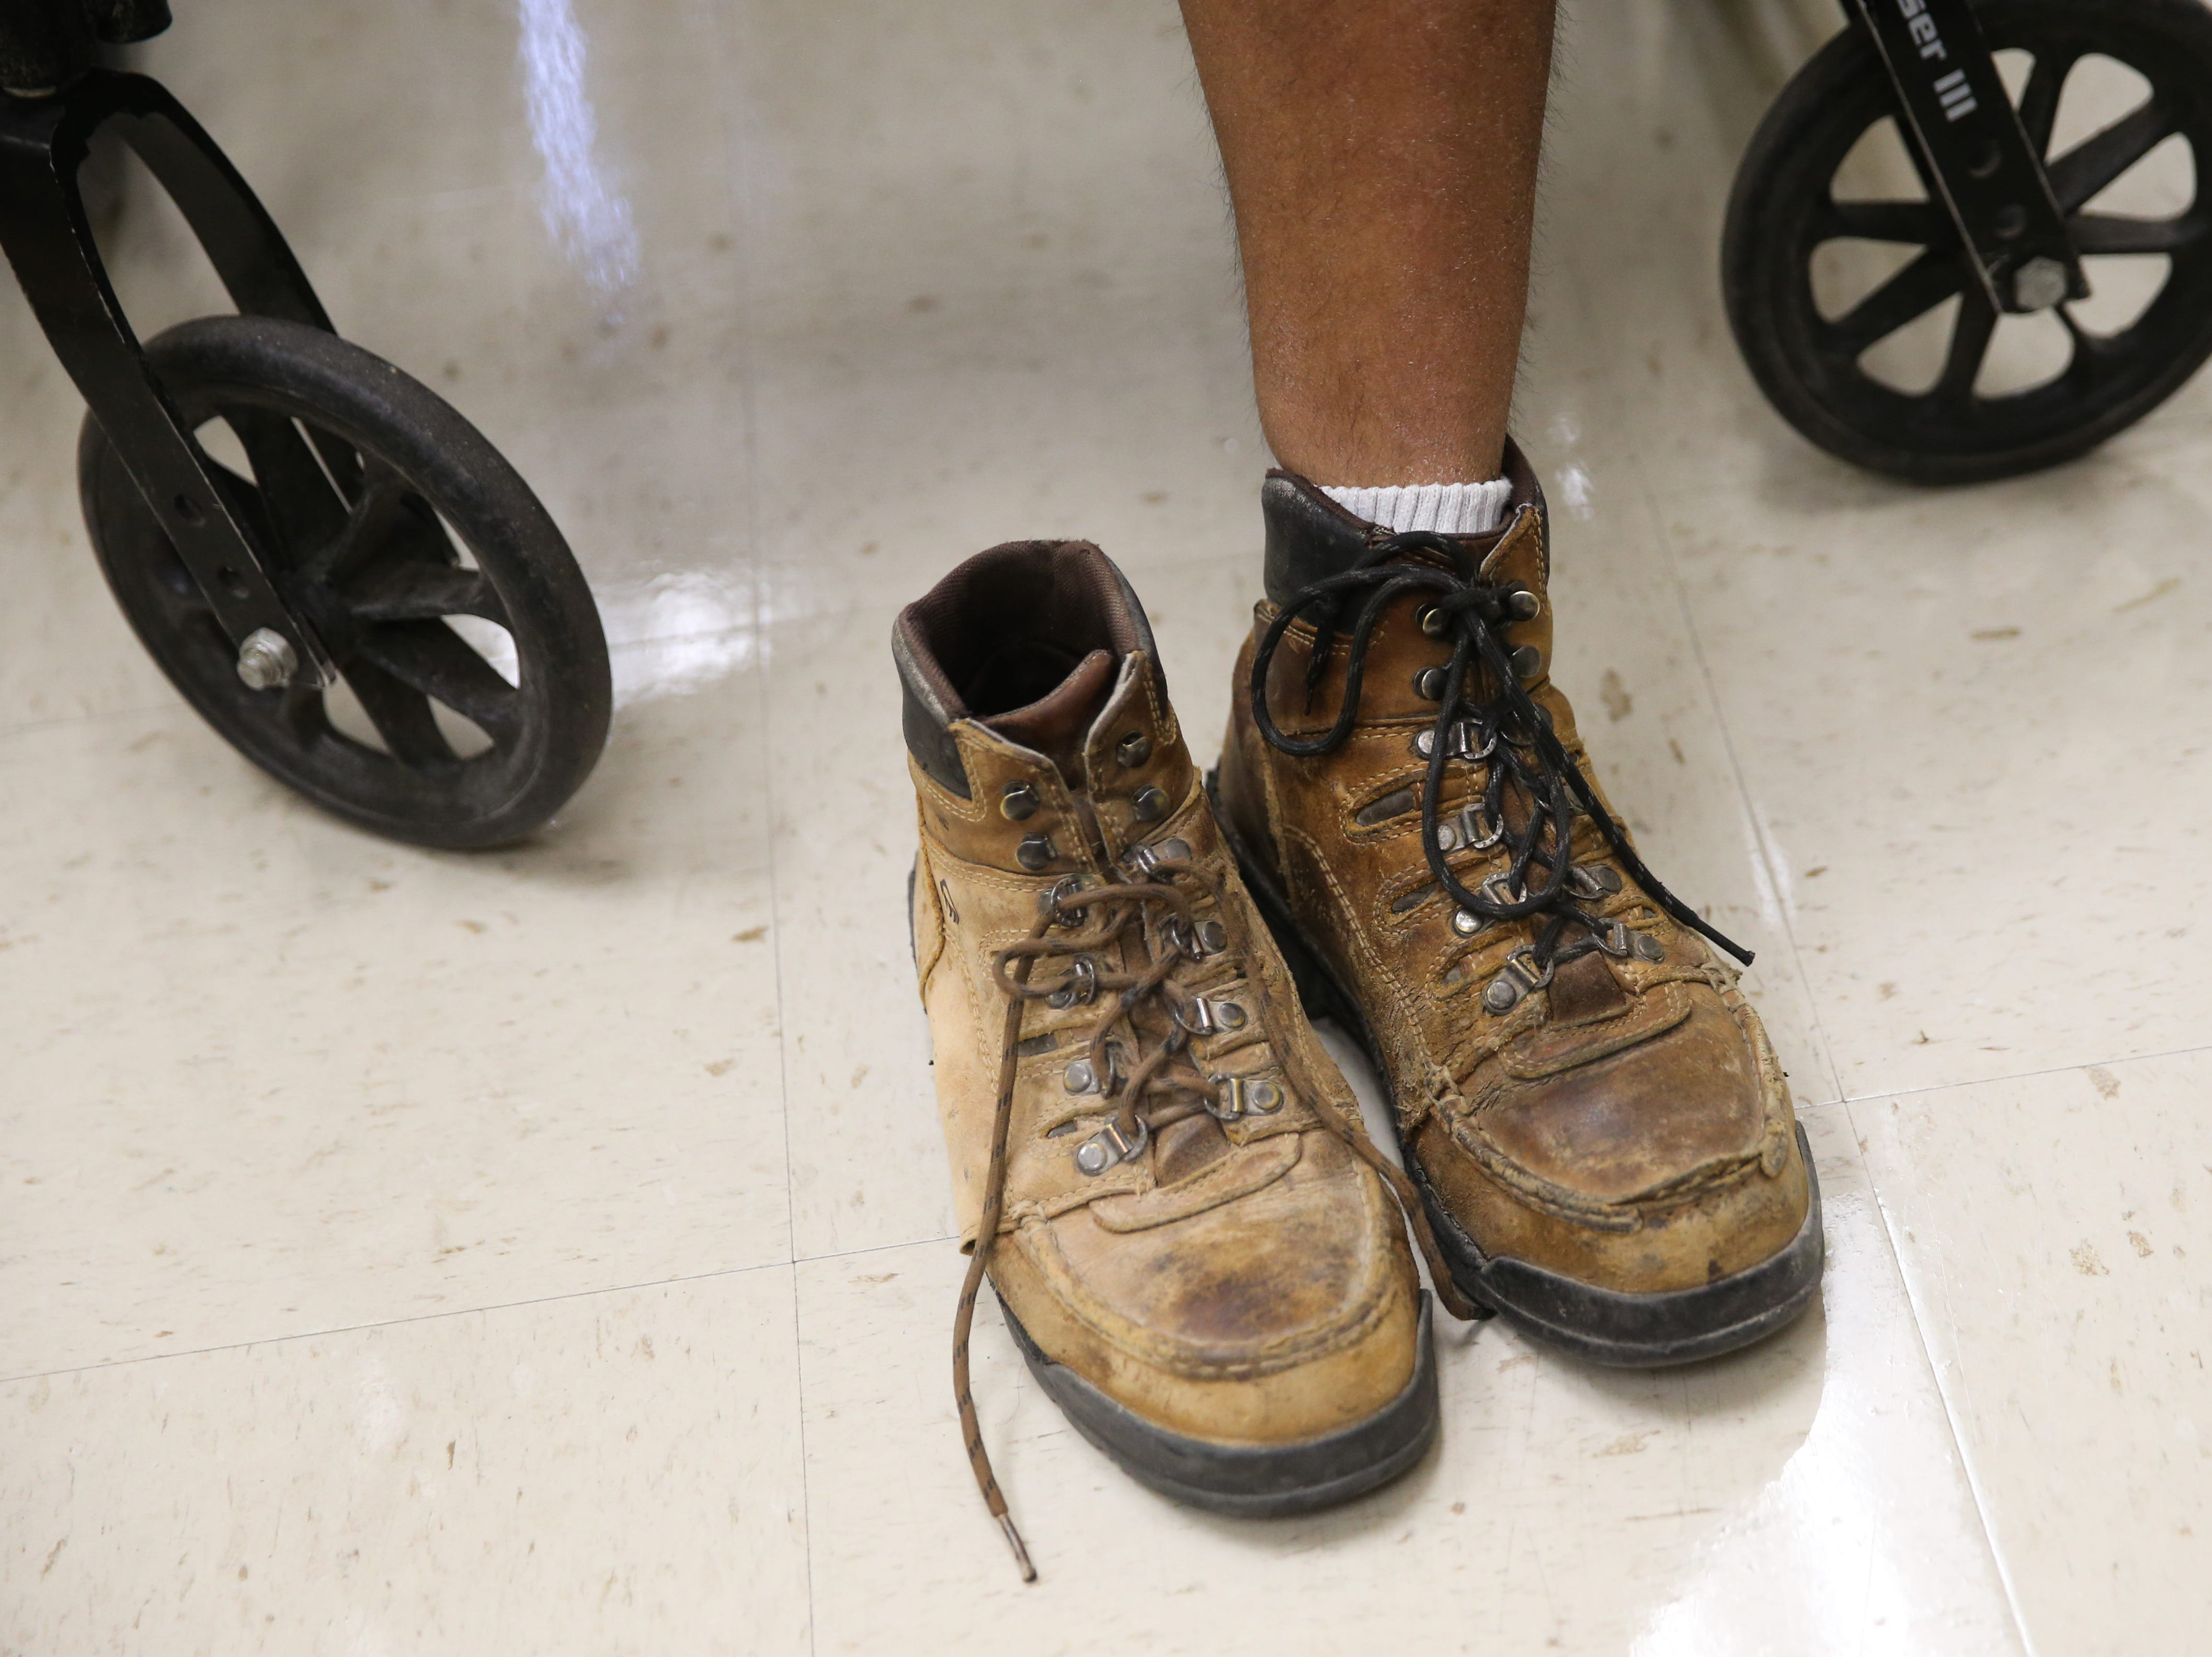 Jeremy Armenta waits for final adjustments on his new prosthetic Wednesday, March 20, 2019, at West Texas Rehab.